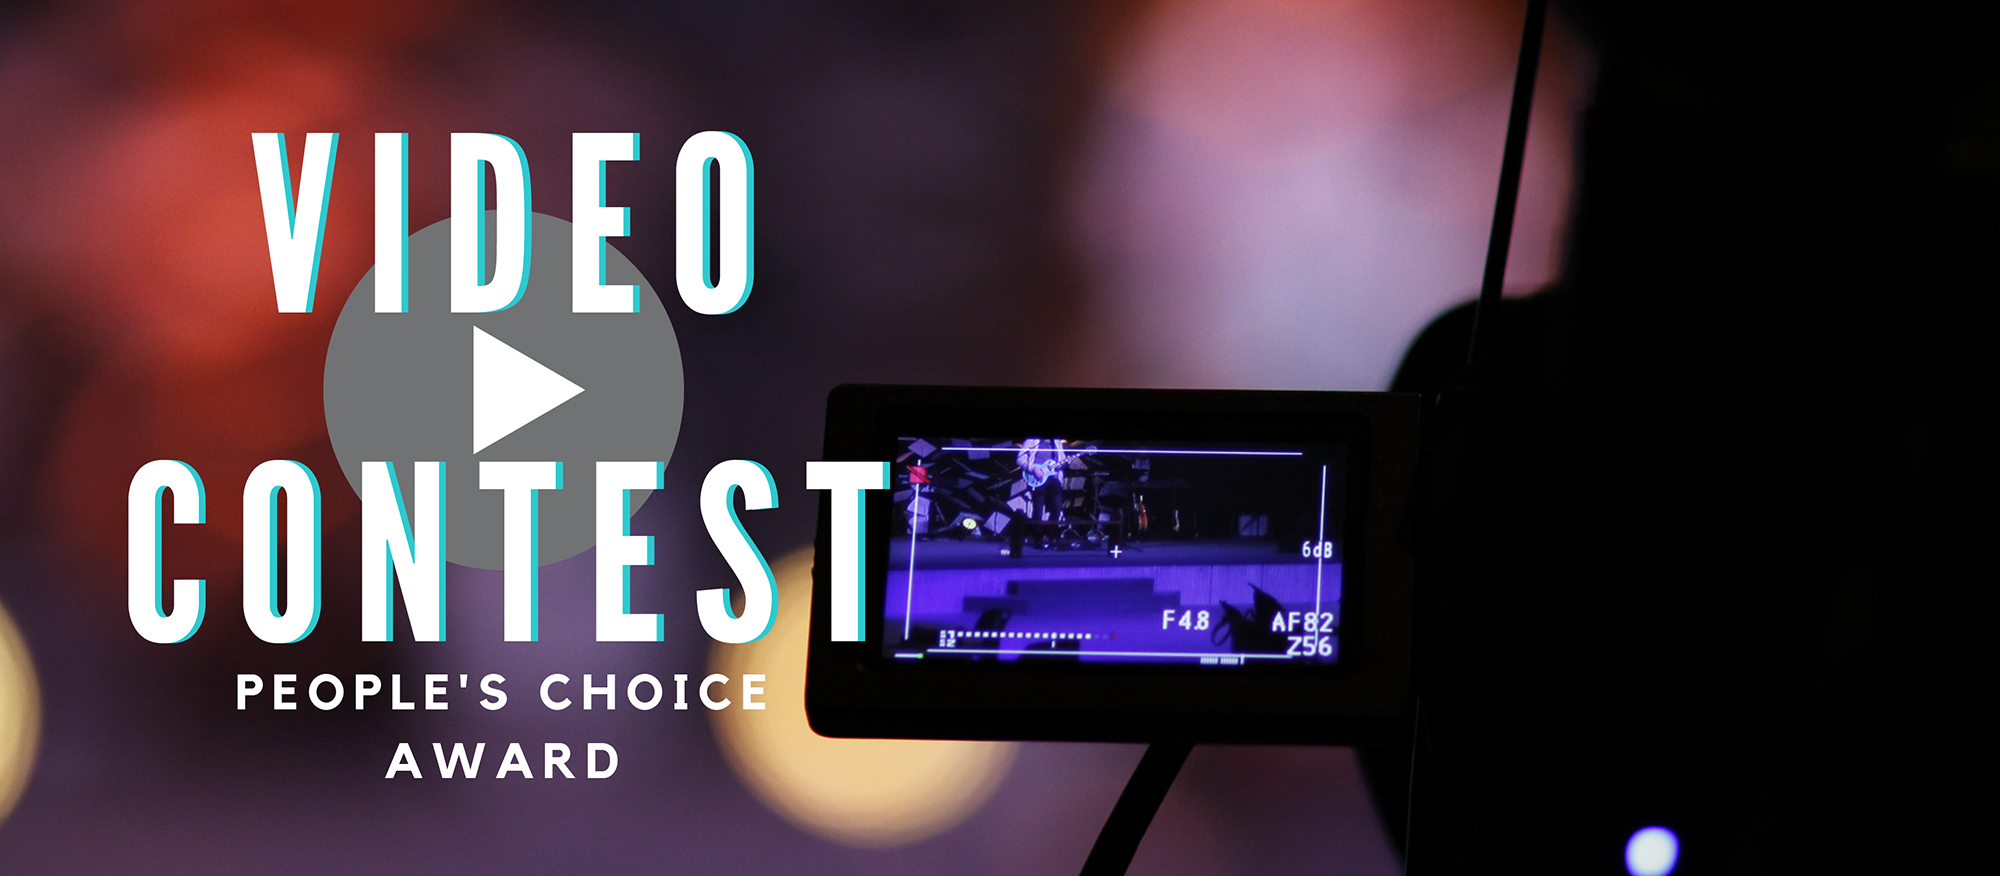 Video Contest People's Choice Award